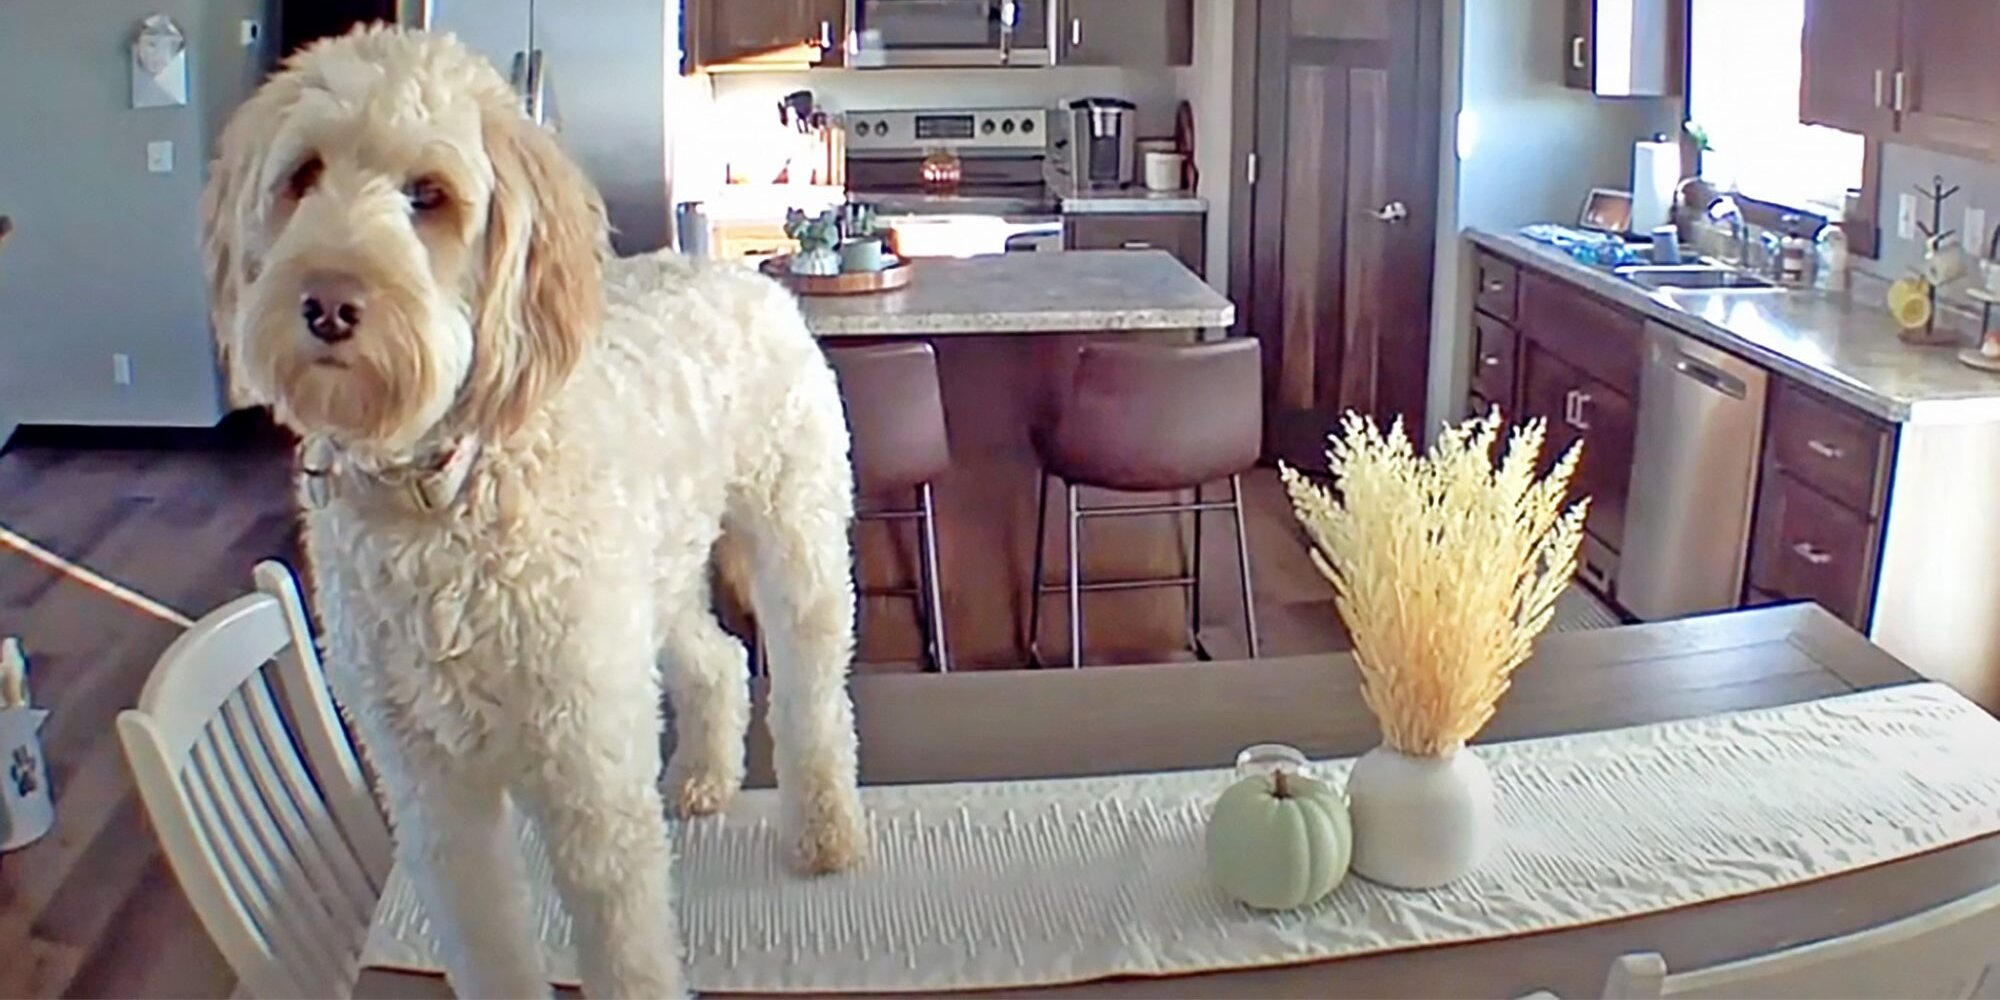 Watch This Goldendoodle Hysterically Ignore Her Mom's Pleas to Get Off the Kitchen Table